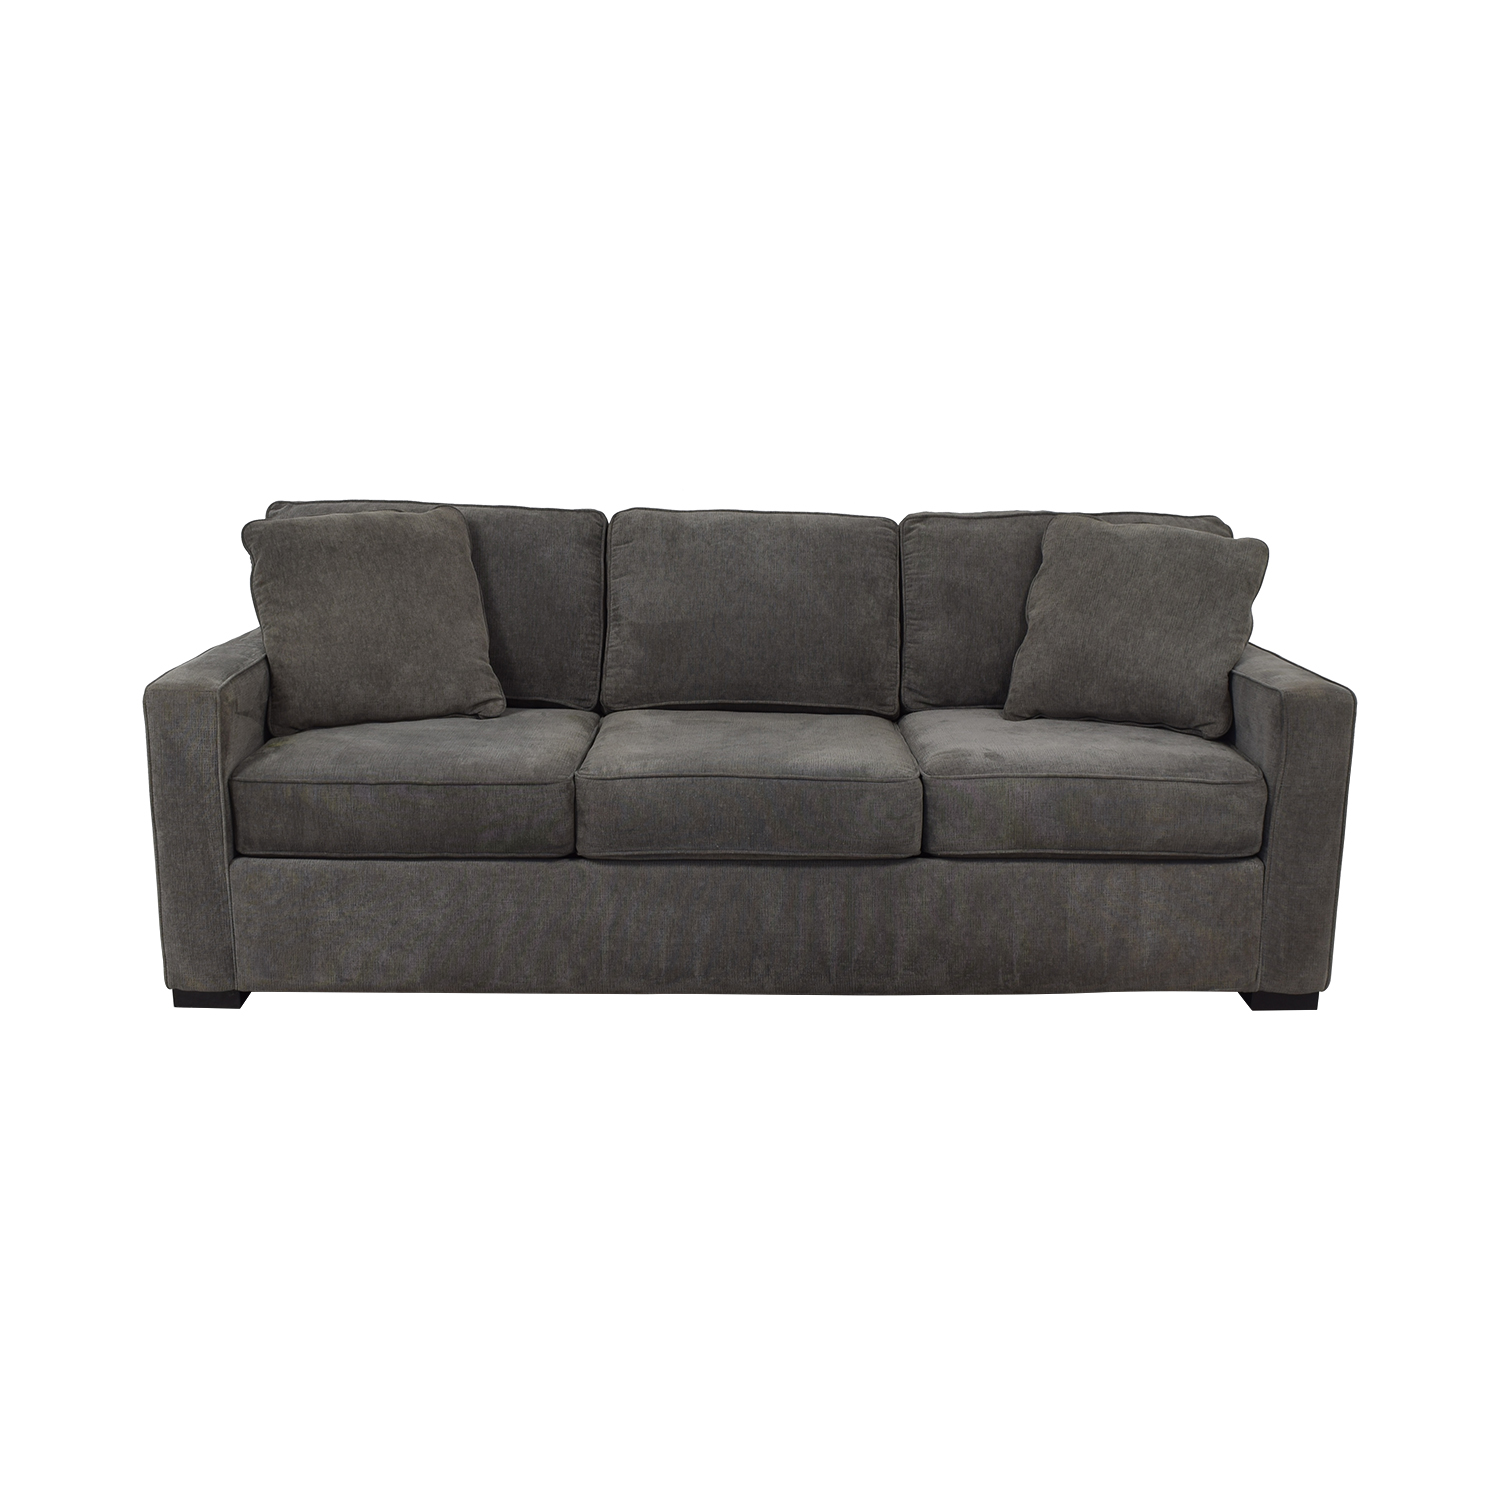 Macy's Three Cushion Sofa Macy's